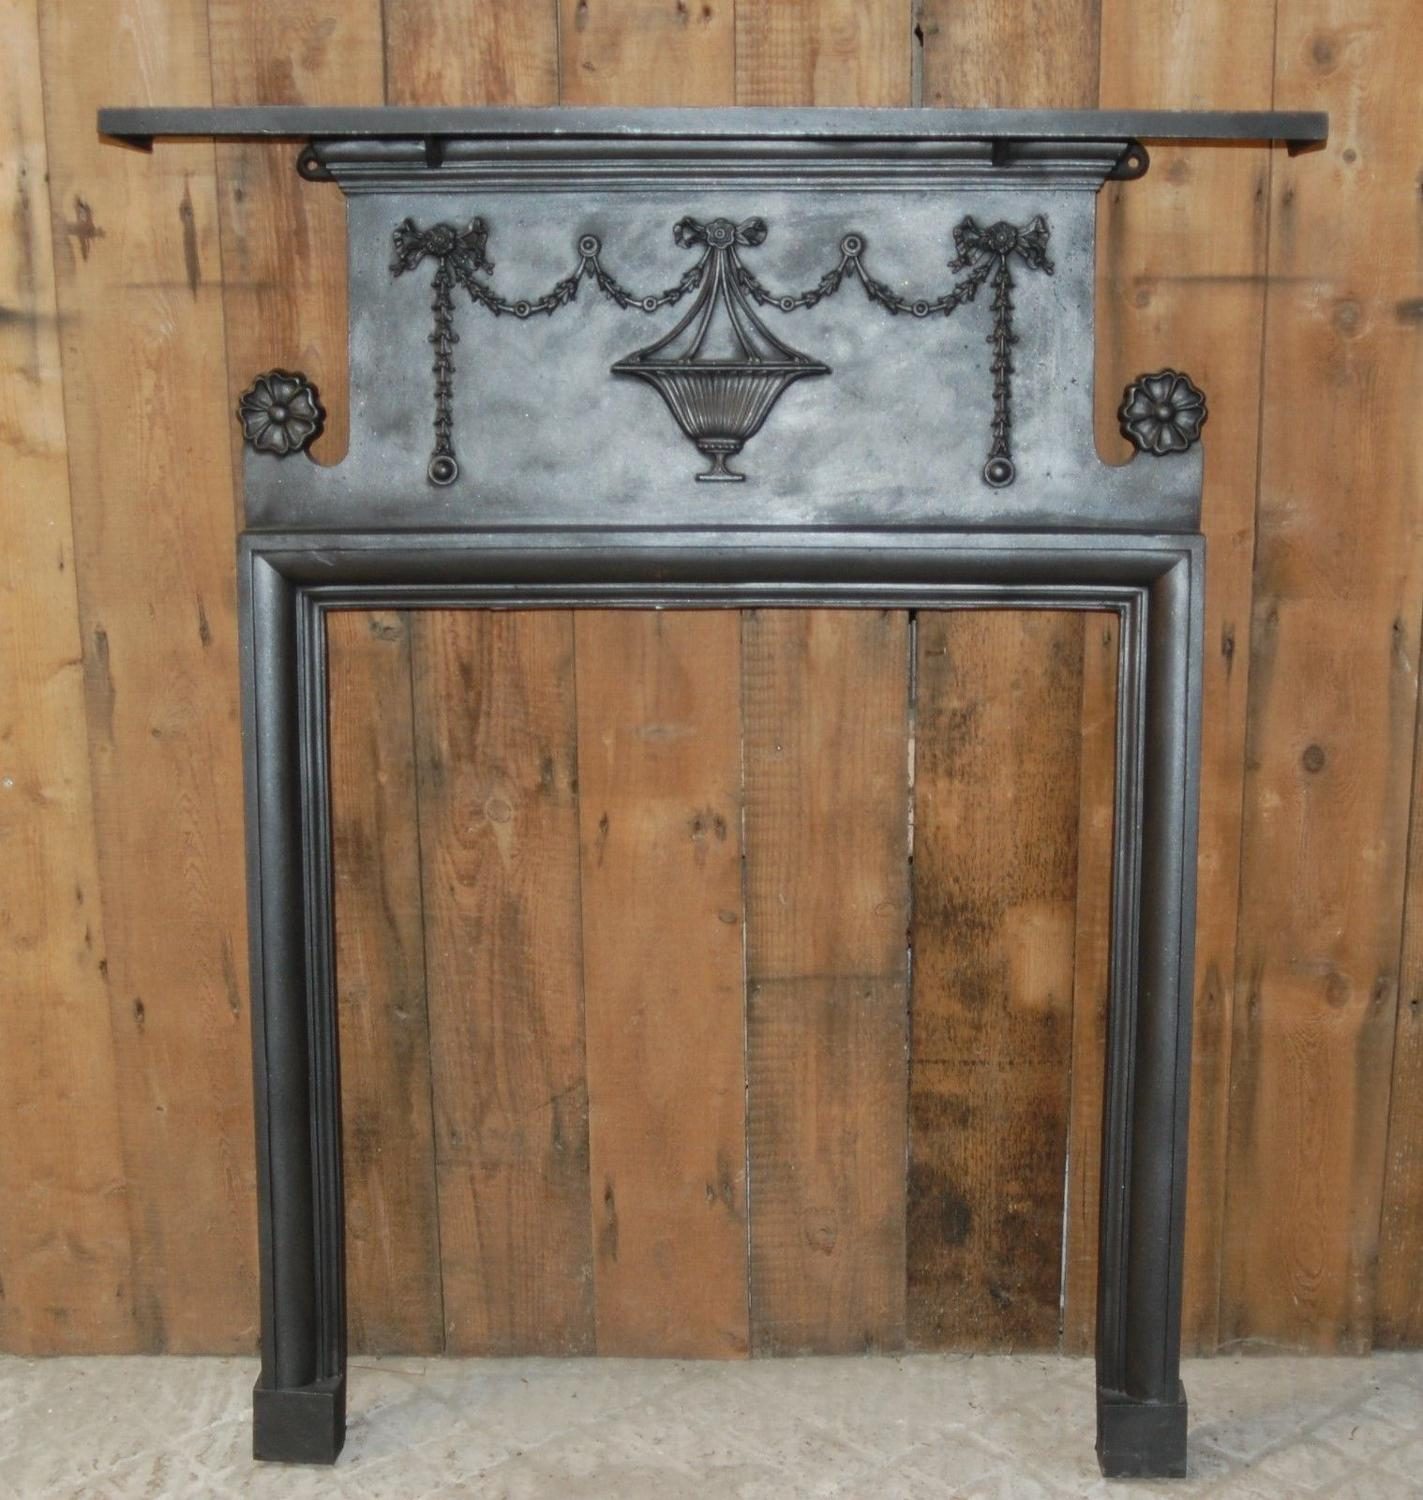 FS0040 A DECORATIVE ANTIQUE EDWARDIAN CAST IRON FIRE SURROUND C.1905